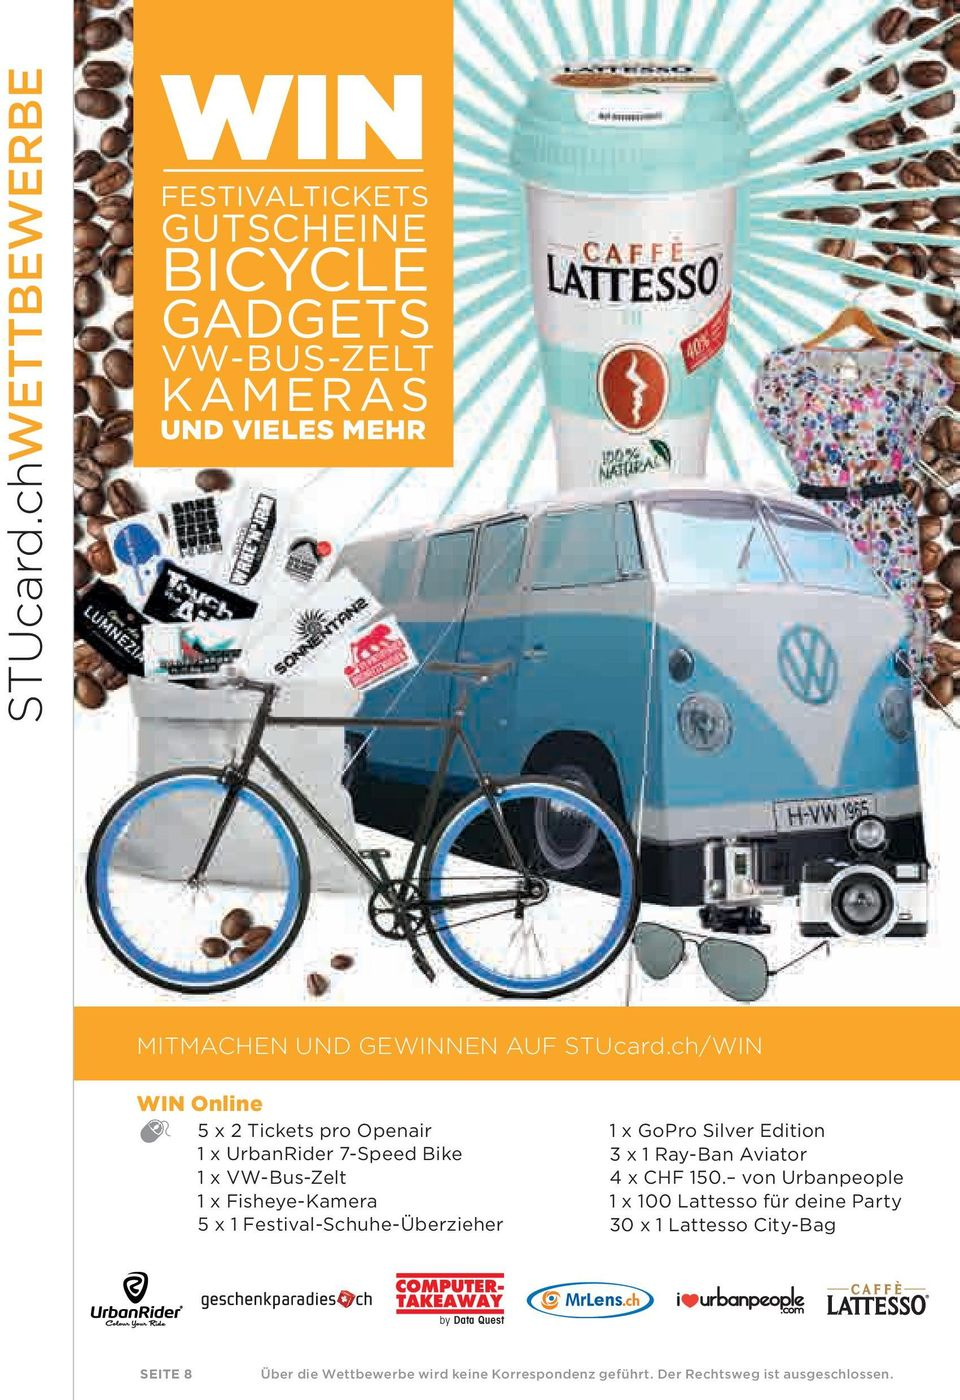 ch/WIN WIN Online 5 x 2 Tickets pro Openair 1 x UrbanRider 7-Speed Bike 1 x VW-Bus-Zelt 1 x Fisheye-Kamera 5 x 1